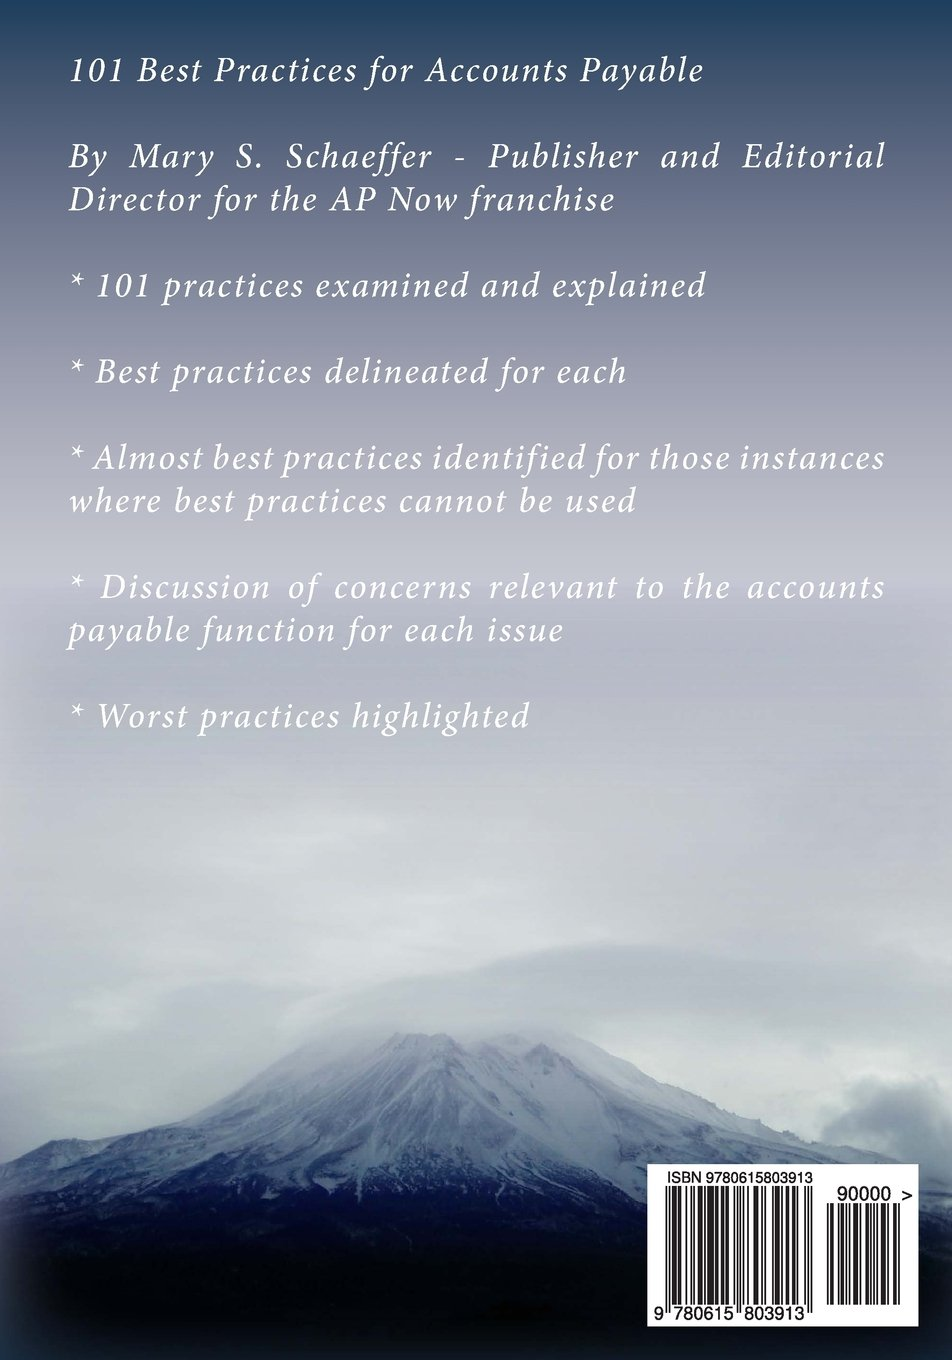 101 Best Practices for Accounts Payable: Amazon.co.uk: Mary S Schaeffer:  9780615803913: Books